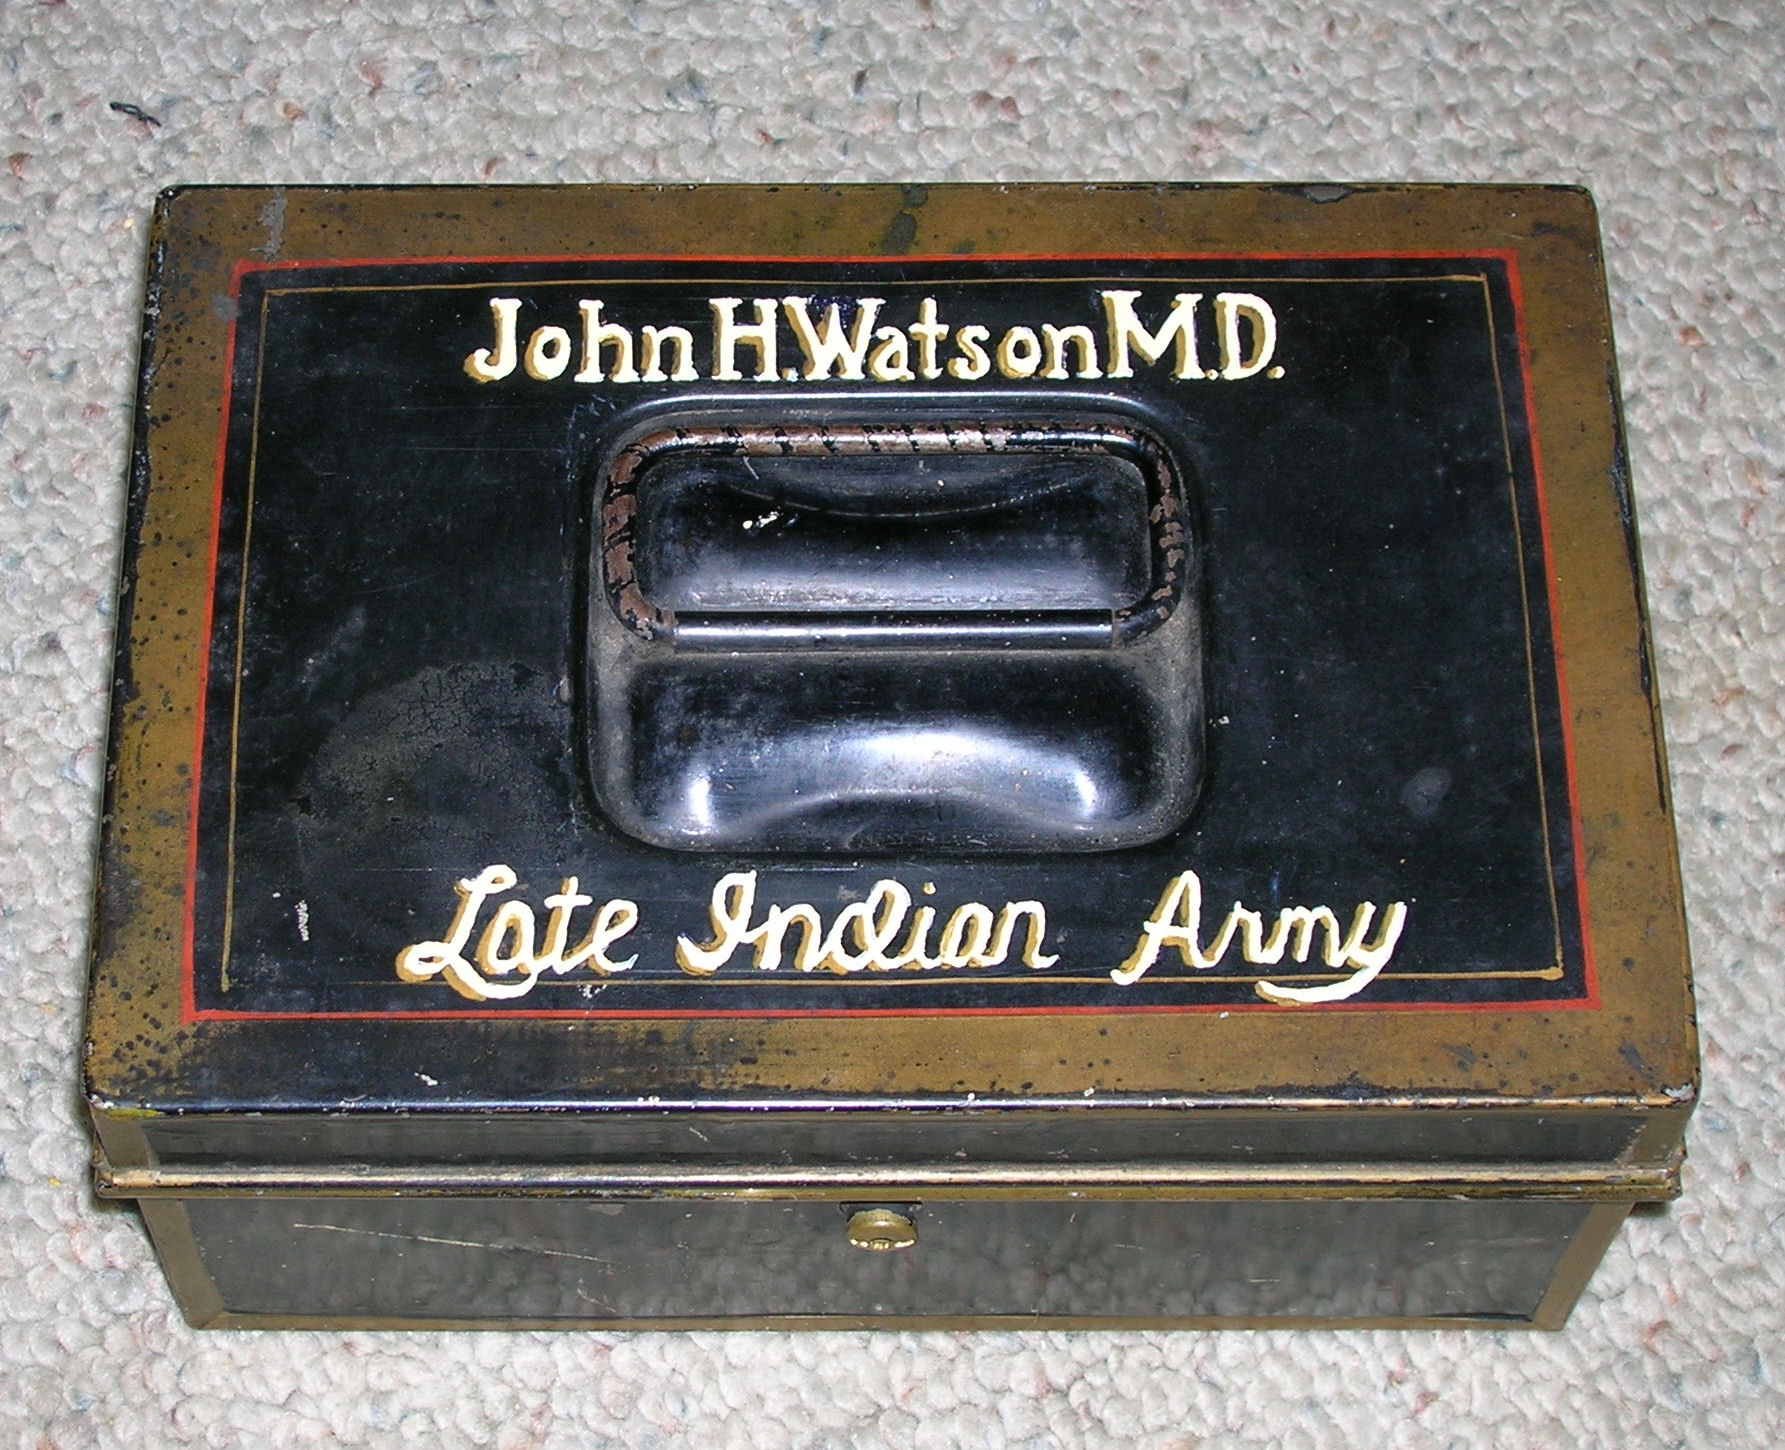 From Watson's Tin Box – The Man With the Twisted Lip